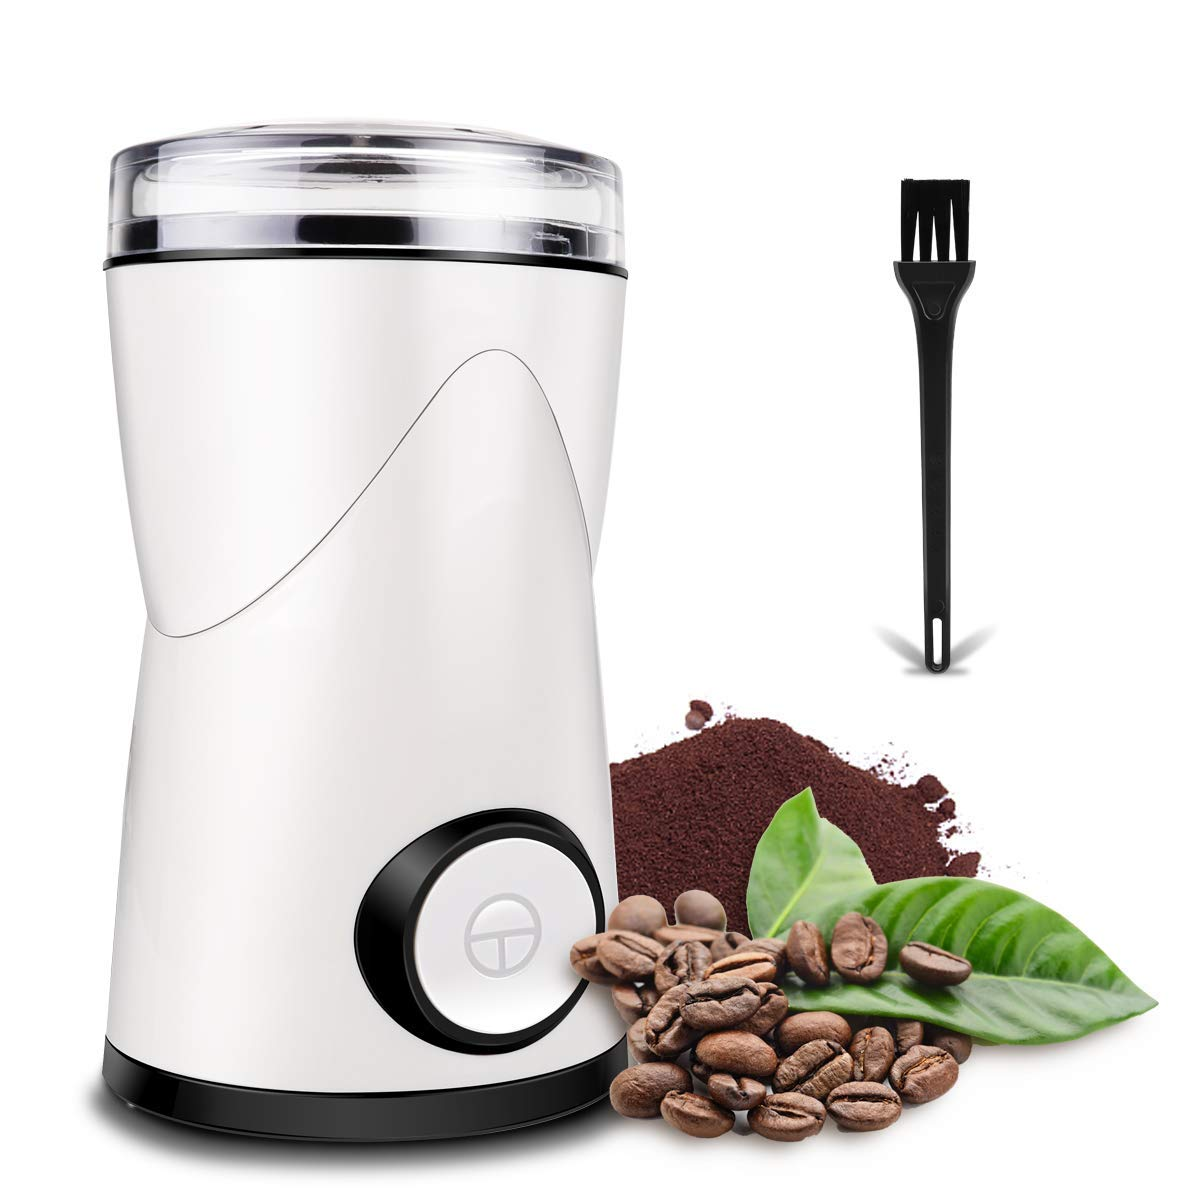 morpilot Electric Coffee Grinder,Spice Grinder,70g Capacity 150w with Stainless Steel Blade BPA Free,Fast Grinding for Coffee Bean, Spices